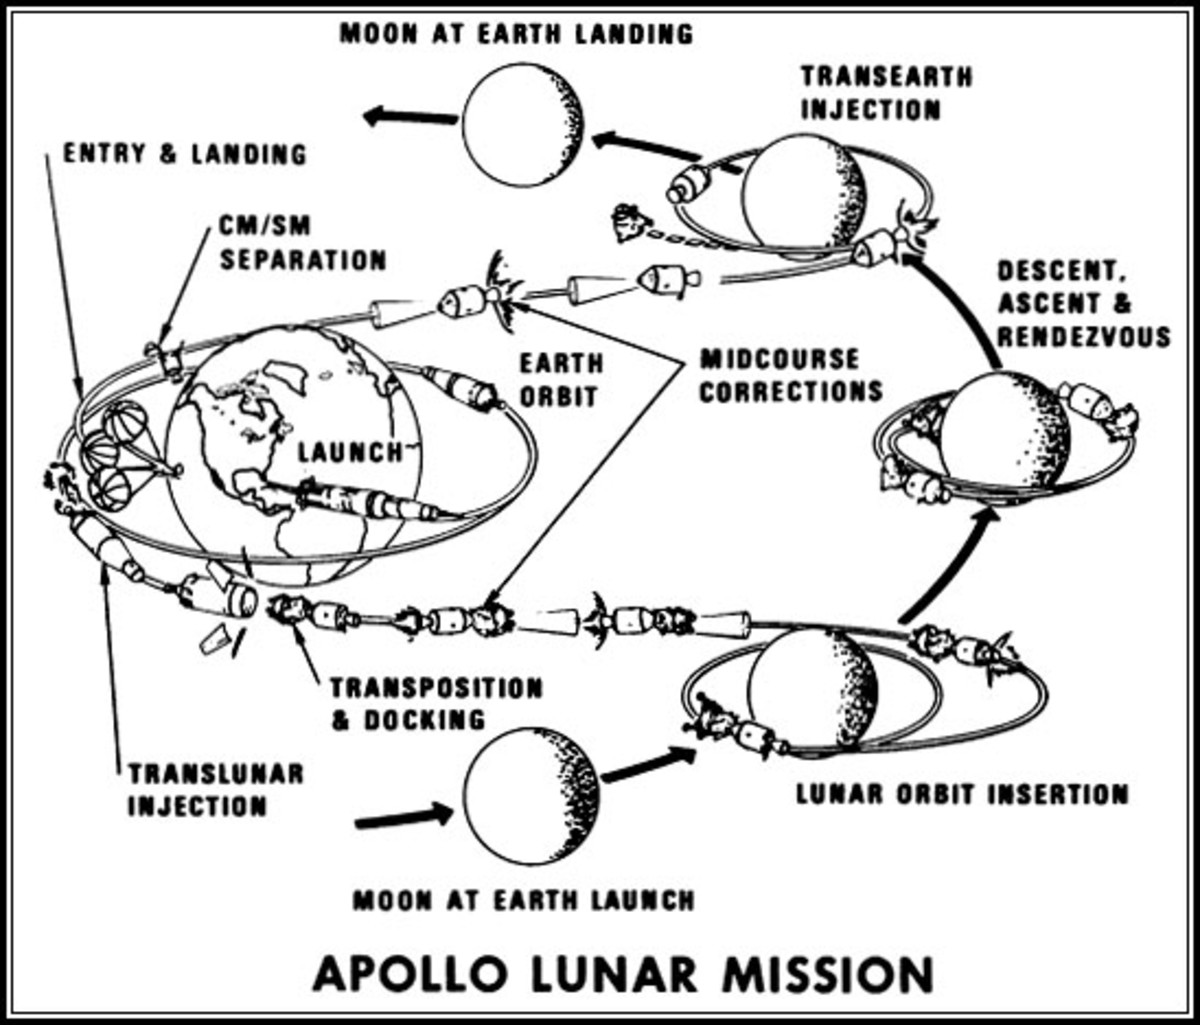 Profile of a lunar mission, a far more complex undertaking than the Mercury flights. Image courtesy of NASA.